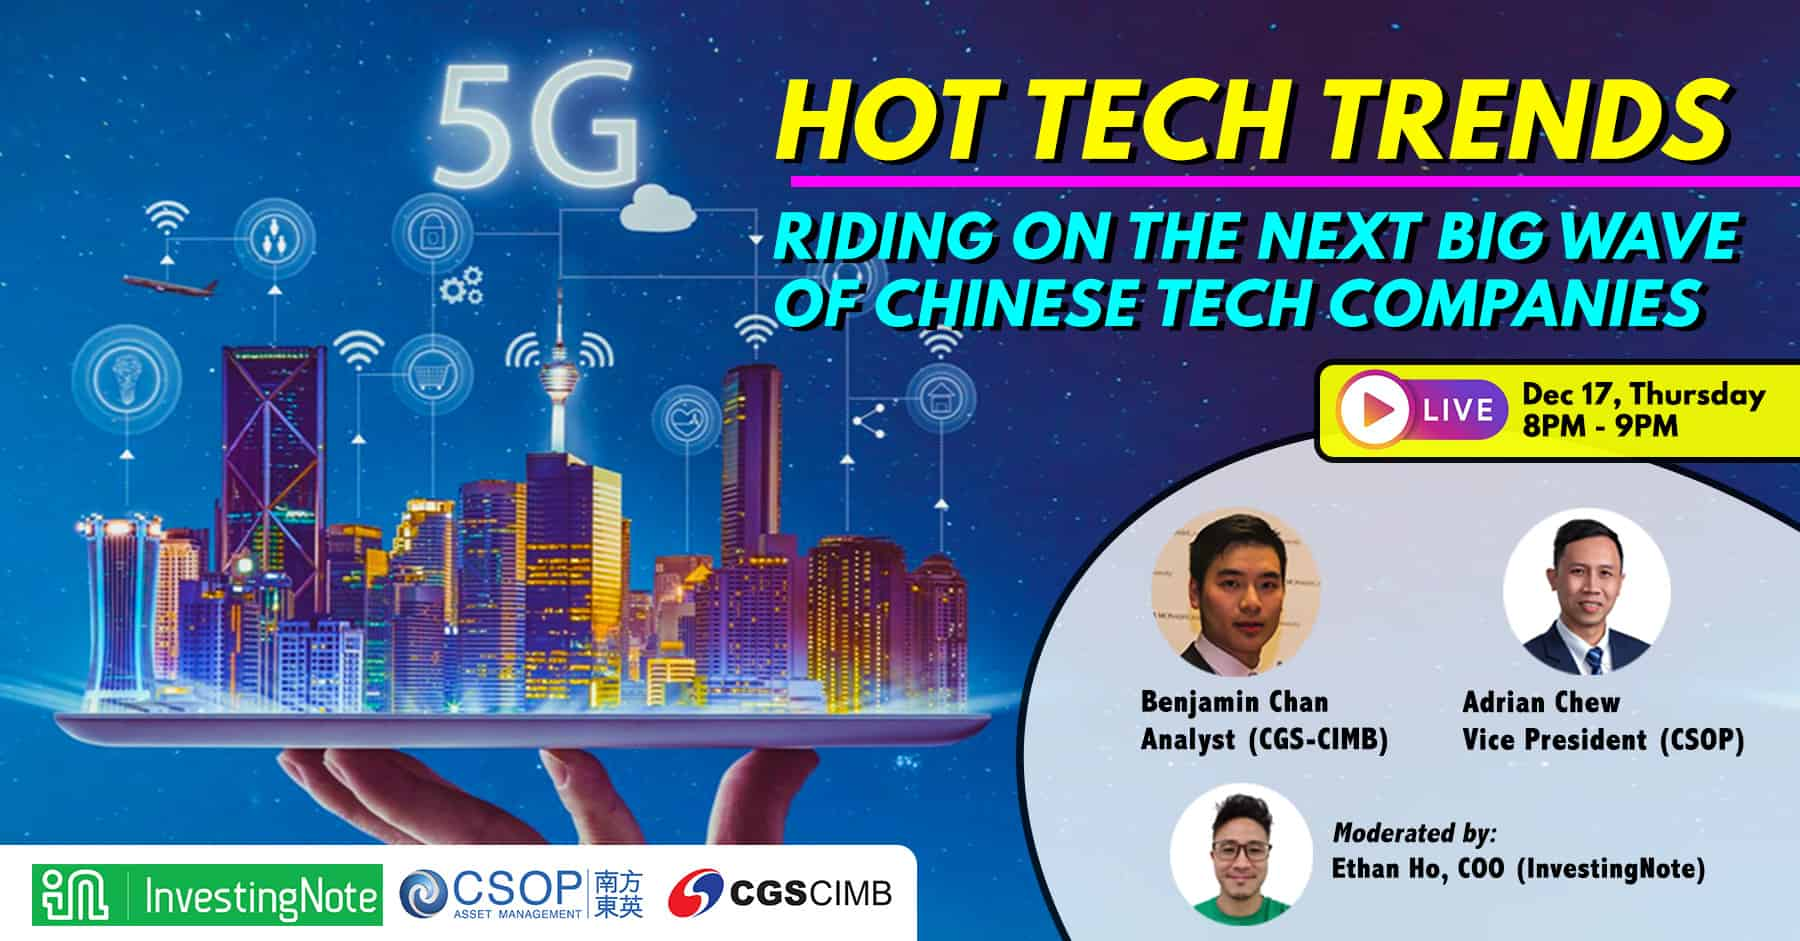 Upcoming Webinar: HOT TECH TRENDS: RIDING ON THE NEXT BIG WAVE OF CHINESE TECH COMPANIES